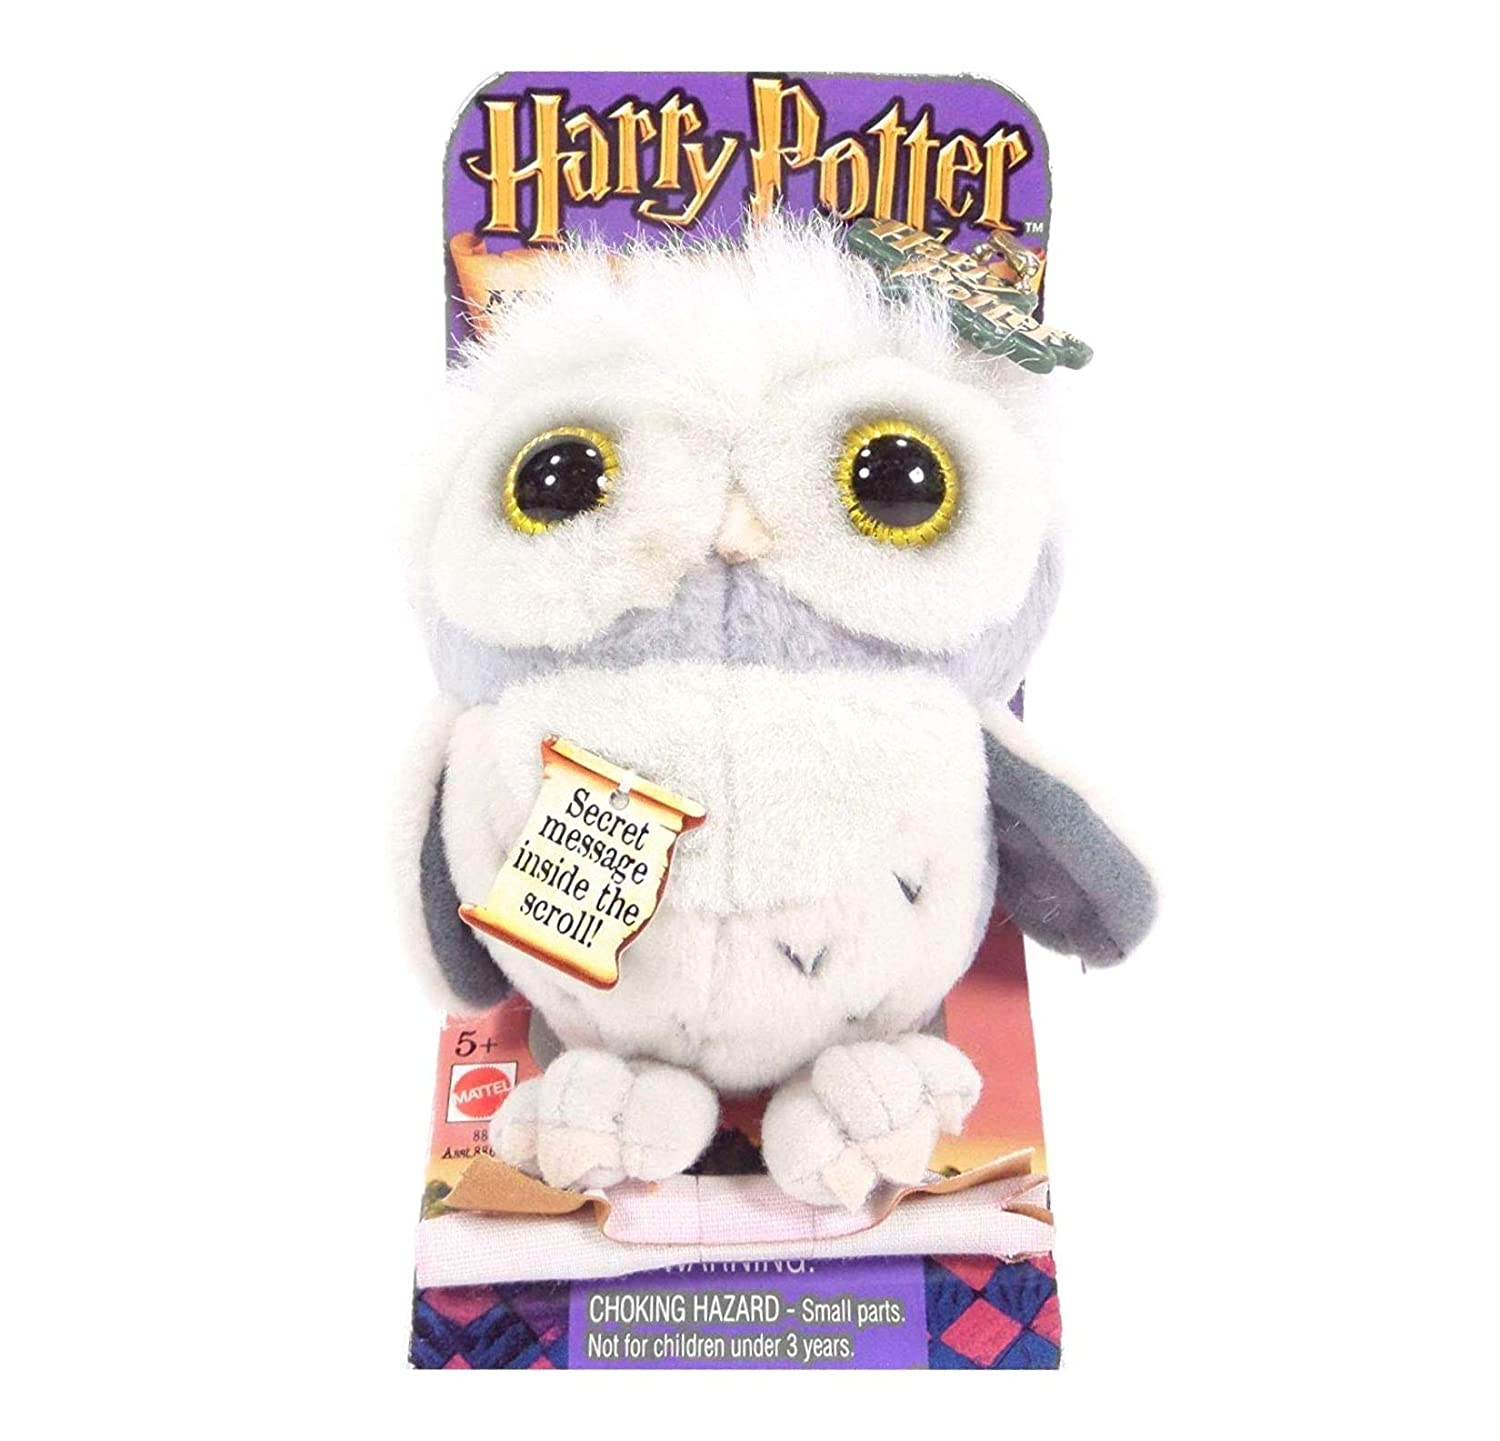 Harry Potter 10cm Messenger Owl Plush Keychain or Attach to Backpack B007SIIK7M